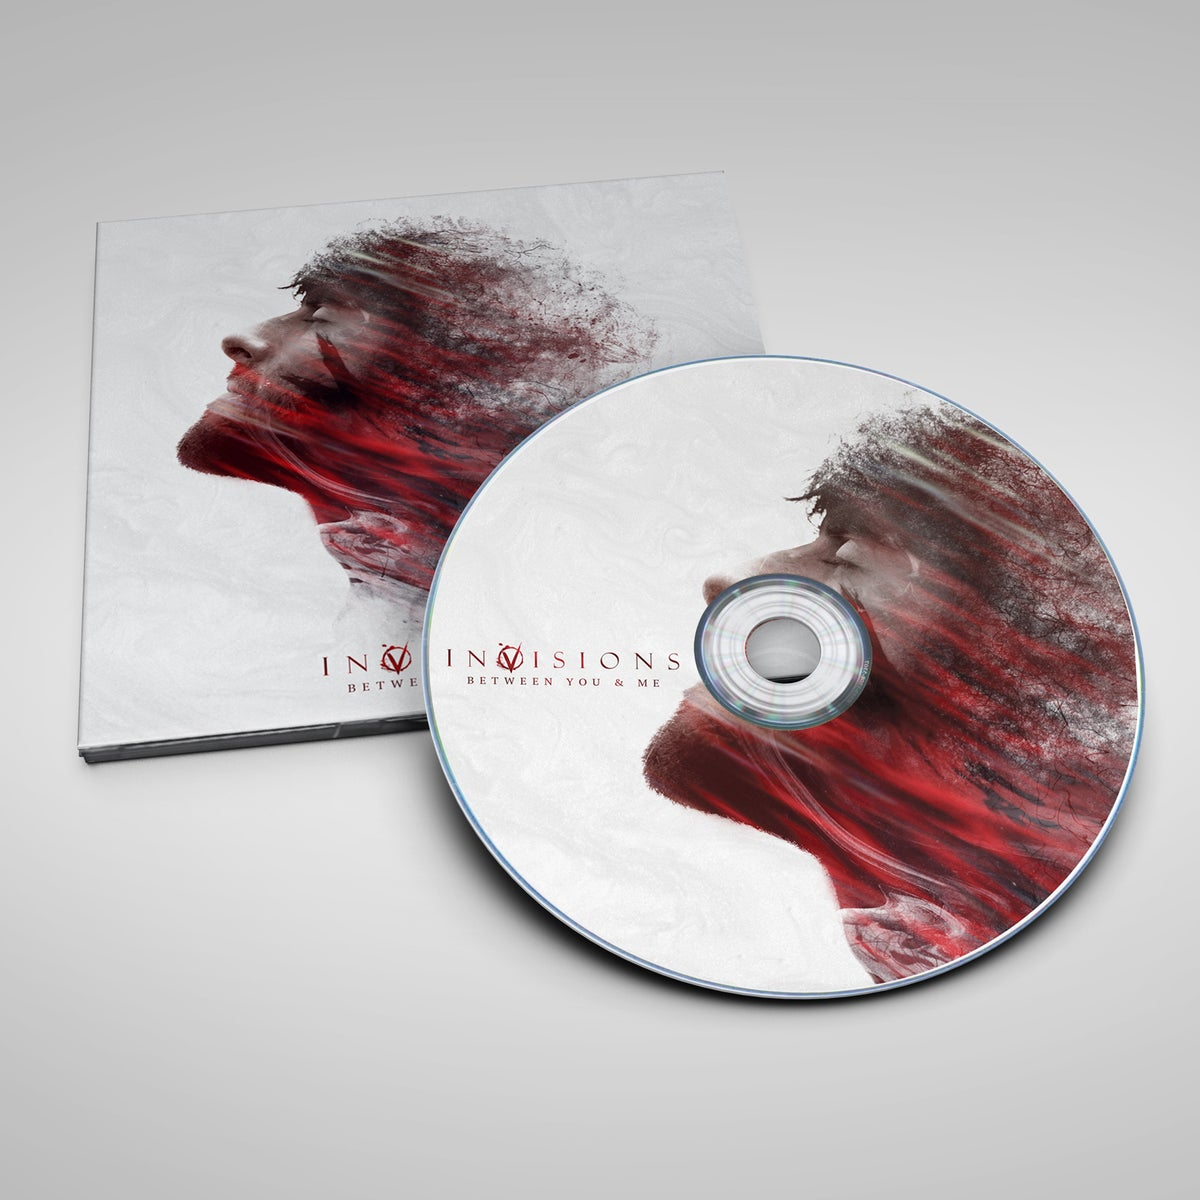 Image of Between You & Me - Physical CD